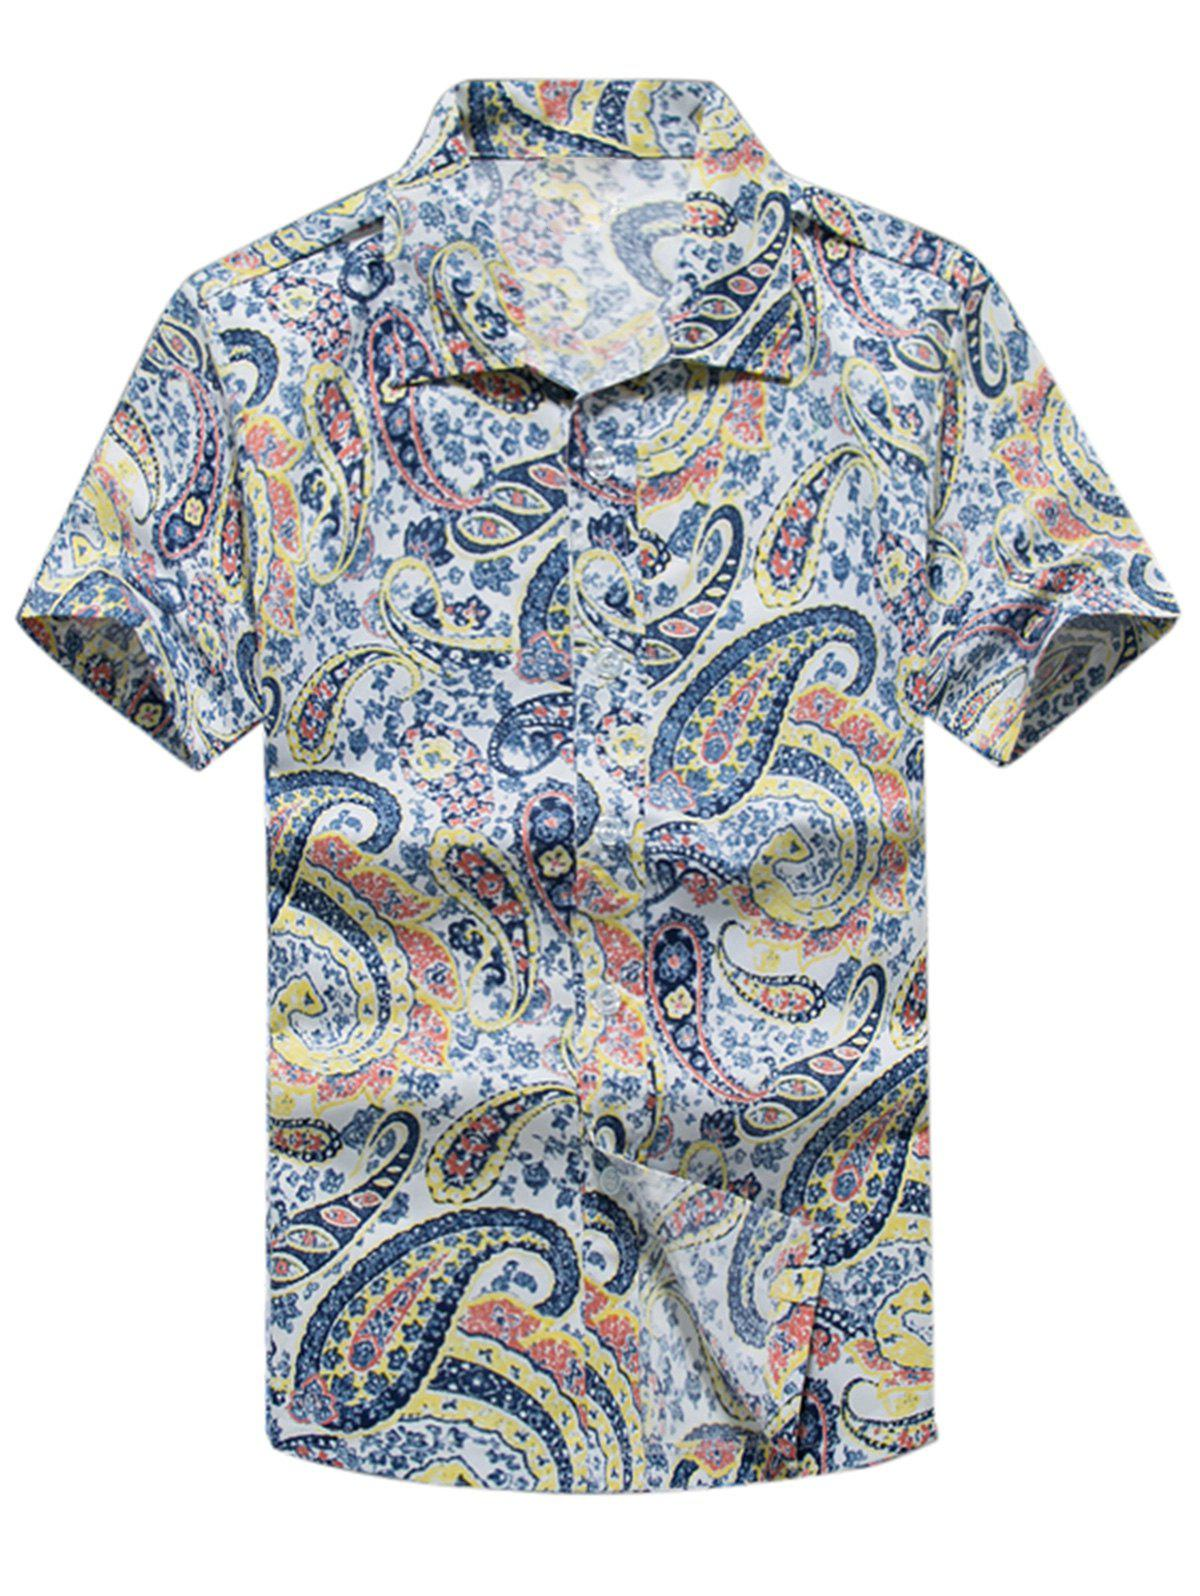 Discount Paisley Print Casual Short Sleeve Shirt